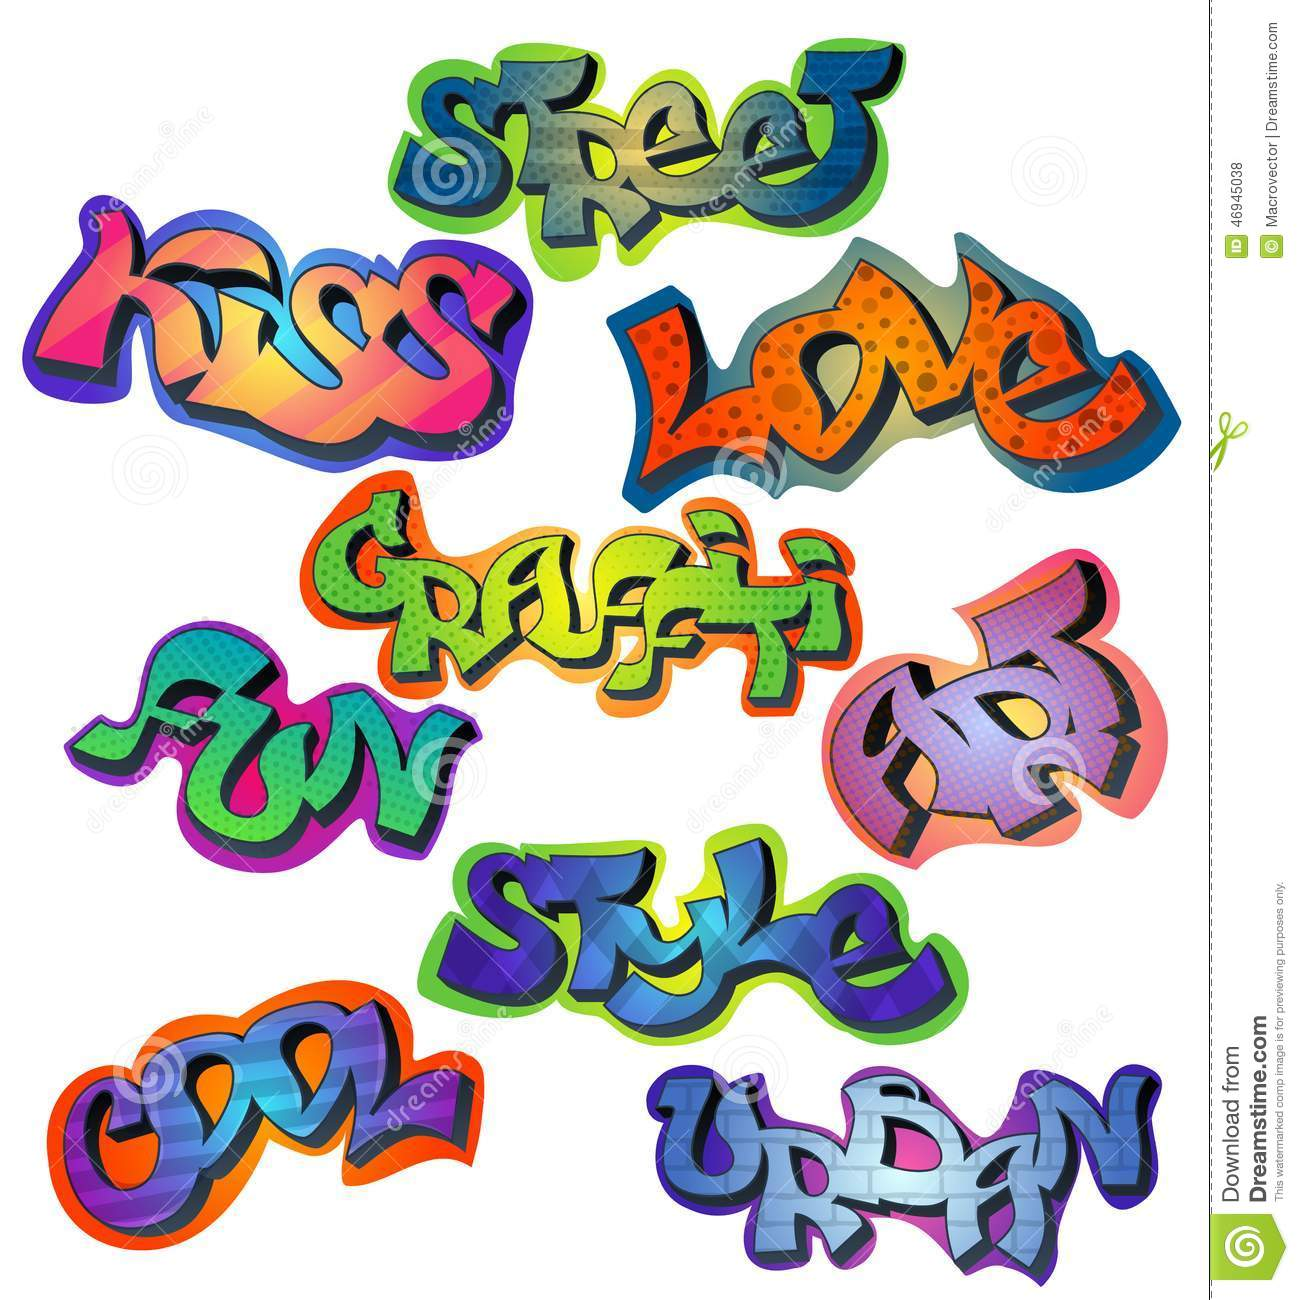 Cool Words In Graffiti